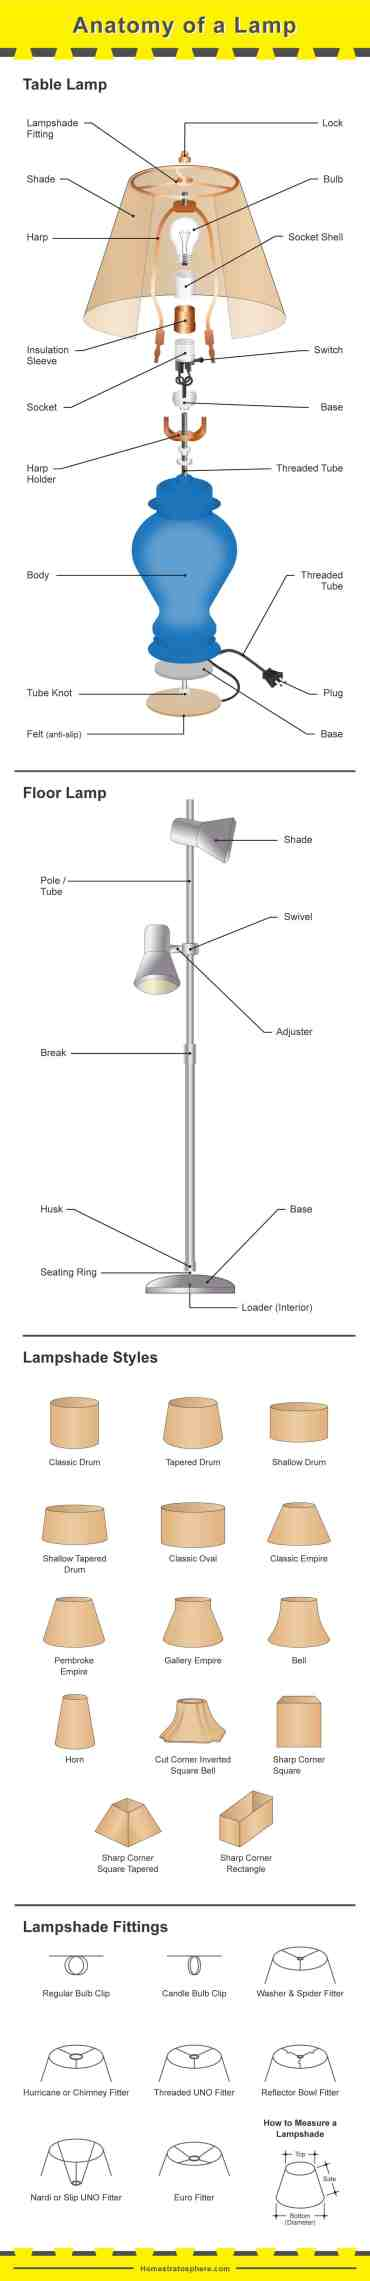 Parts Of A Lamp Table And Floor Lamp Diagram